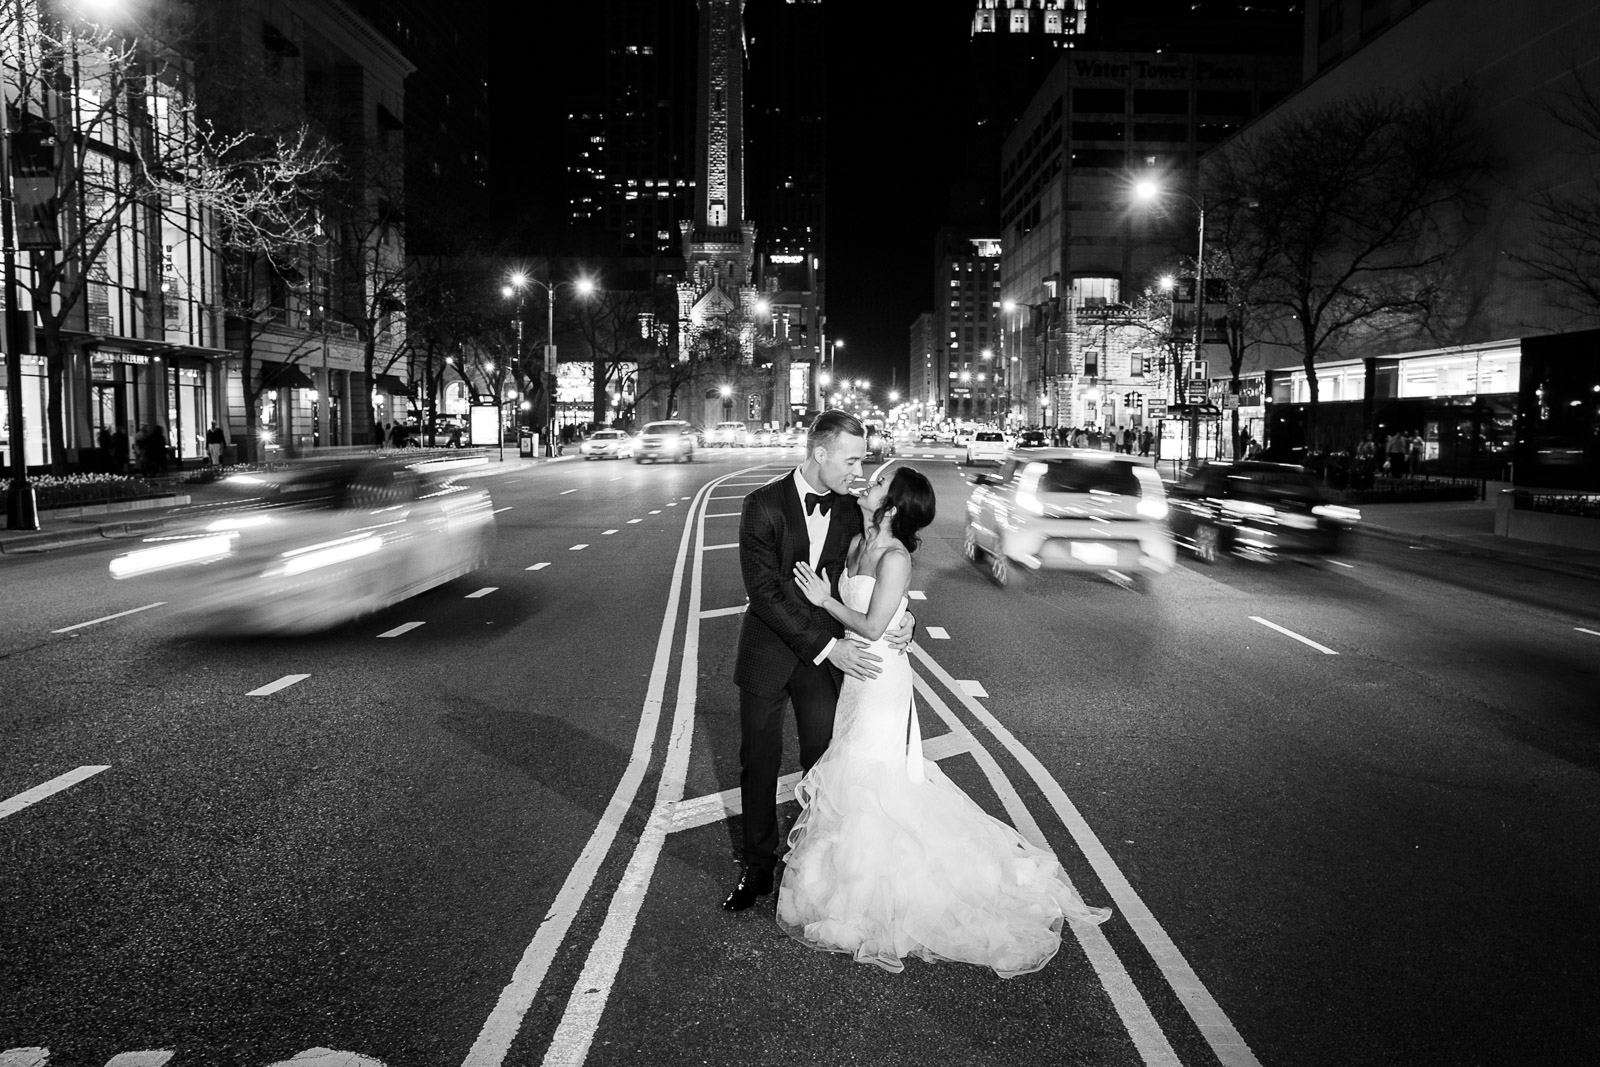 Chad Husar specializes in dynamic and exciting night portraits in downtown Chicago utilizing long exposures and motion.